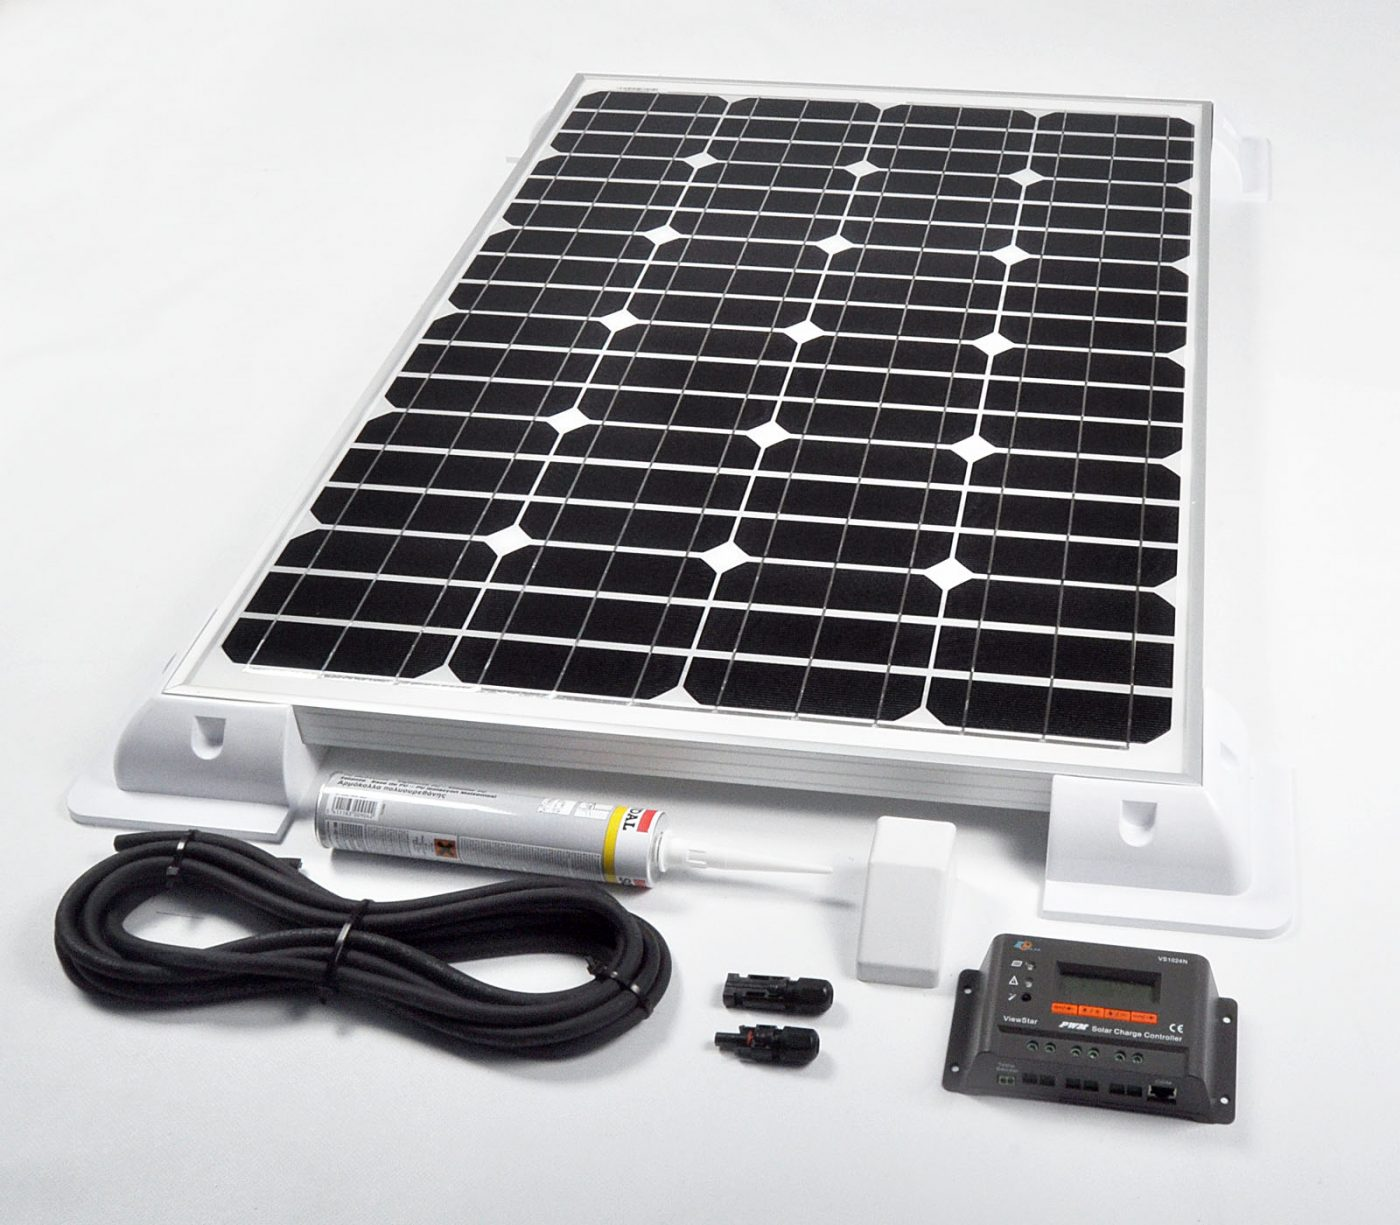 Motorhome Solar Panel Kits Explained Sunstore Power Kit Wiring And Connections